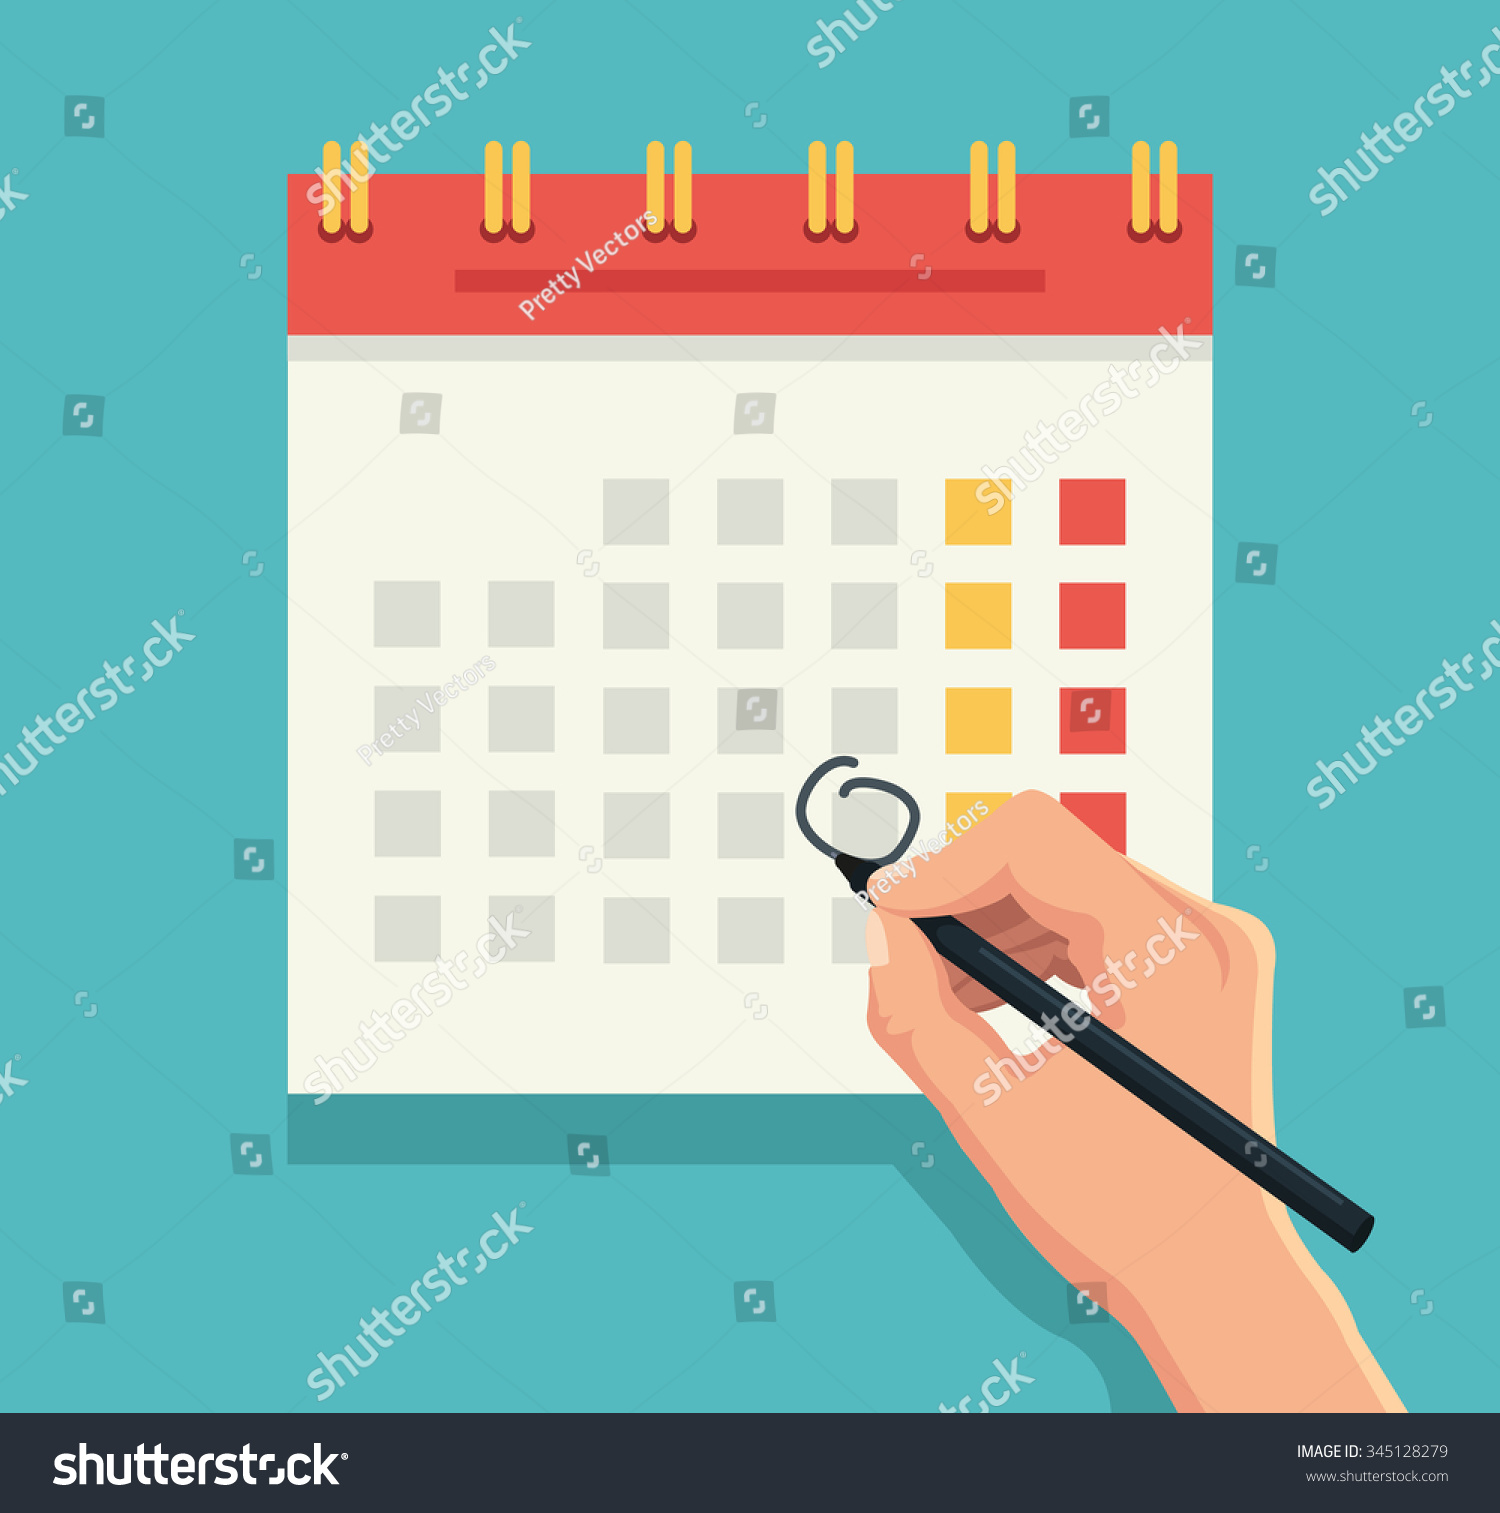 Illustration Calendar Design : Hand pen mark calendar vector flat stock